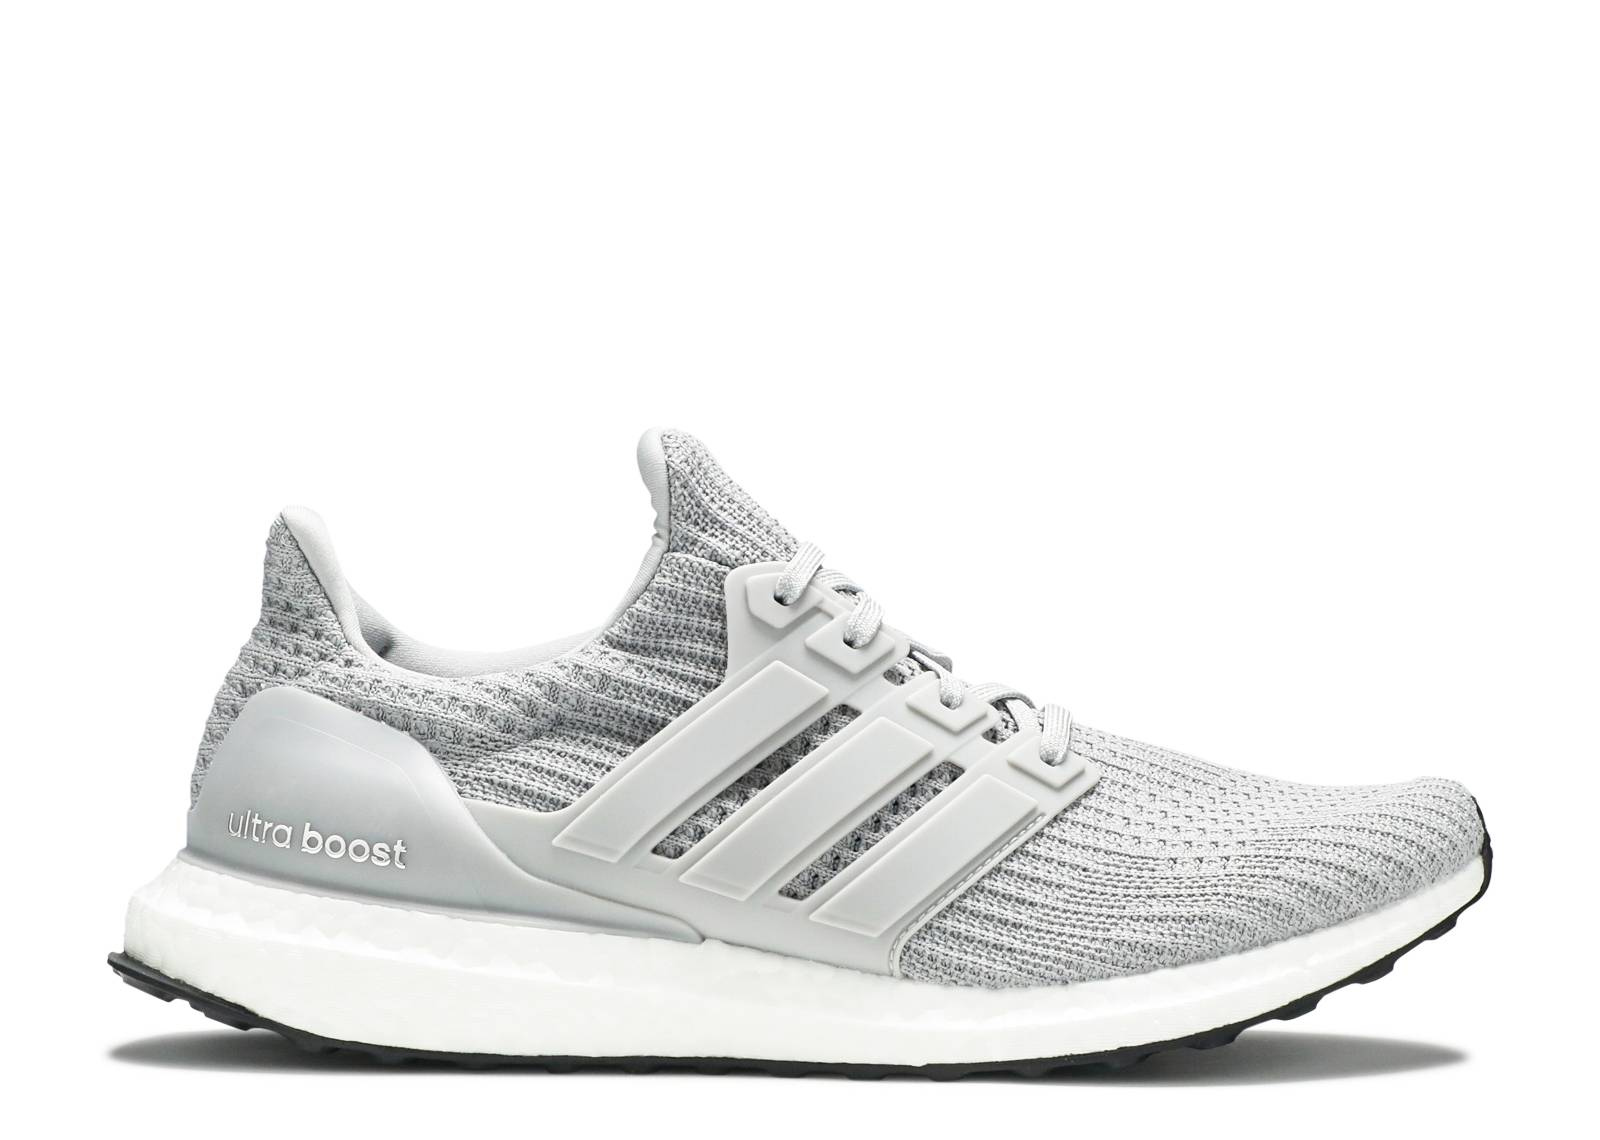 reputable site a74bc 5a8b9 Ultraboost 4.0